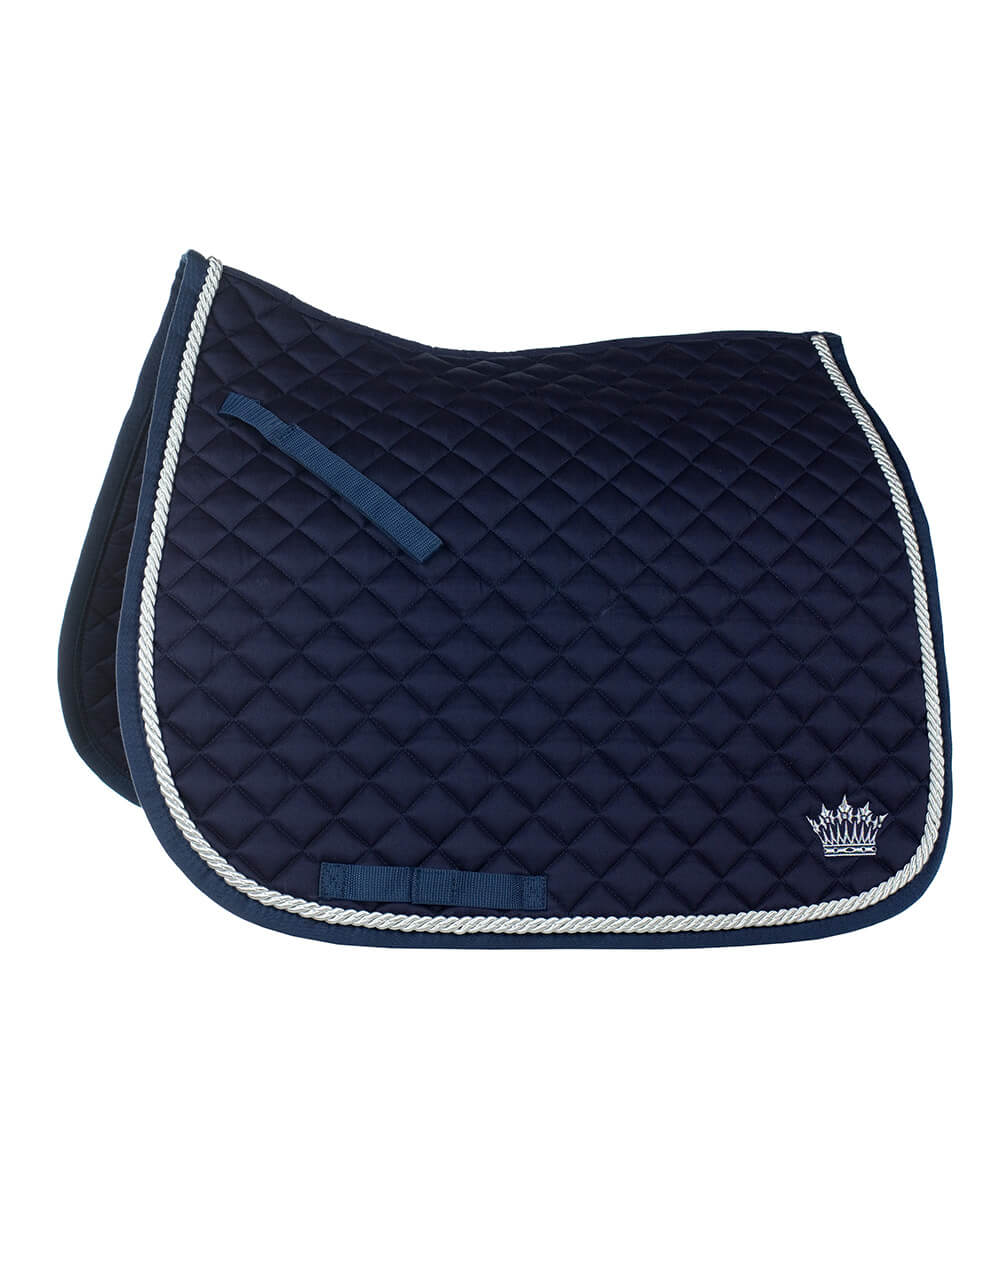 Durable well fitted quilted dressage horse riding numnah with thick silver cord, silver crown motif and a quick dry lining